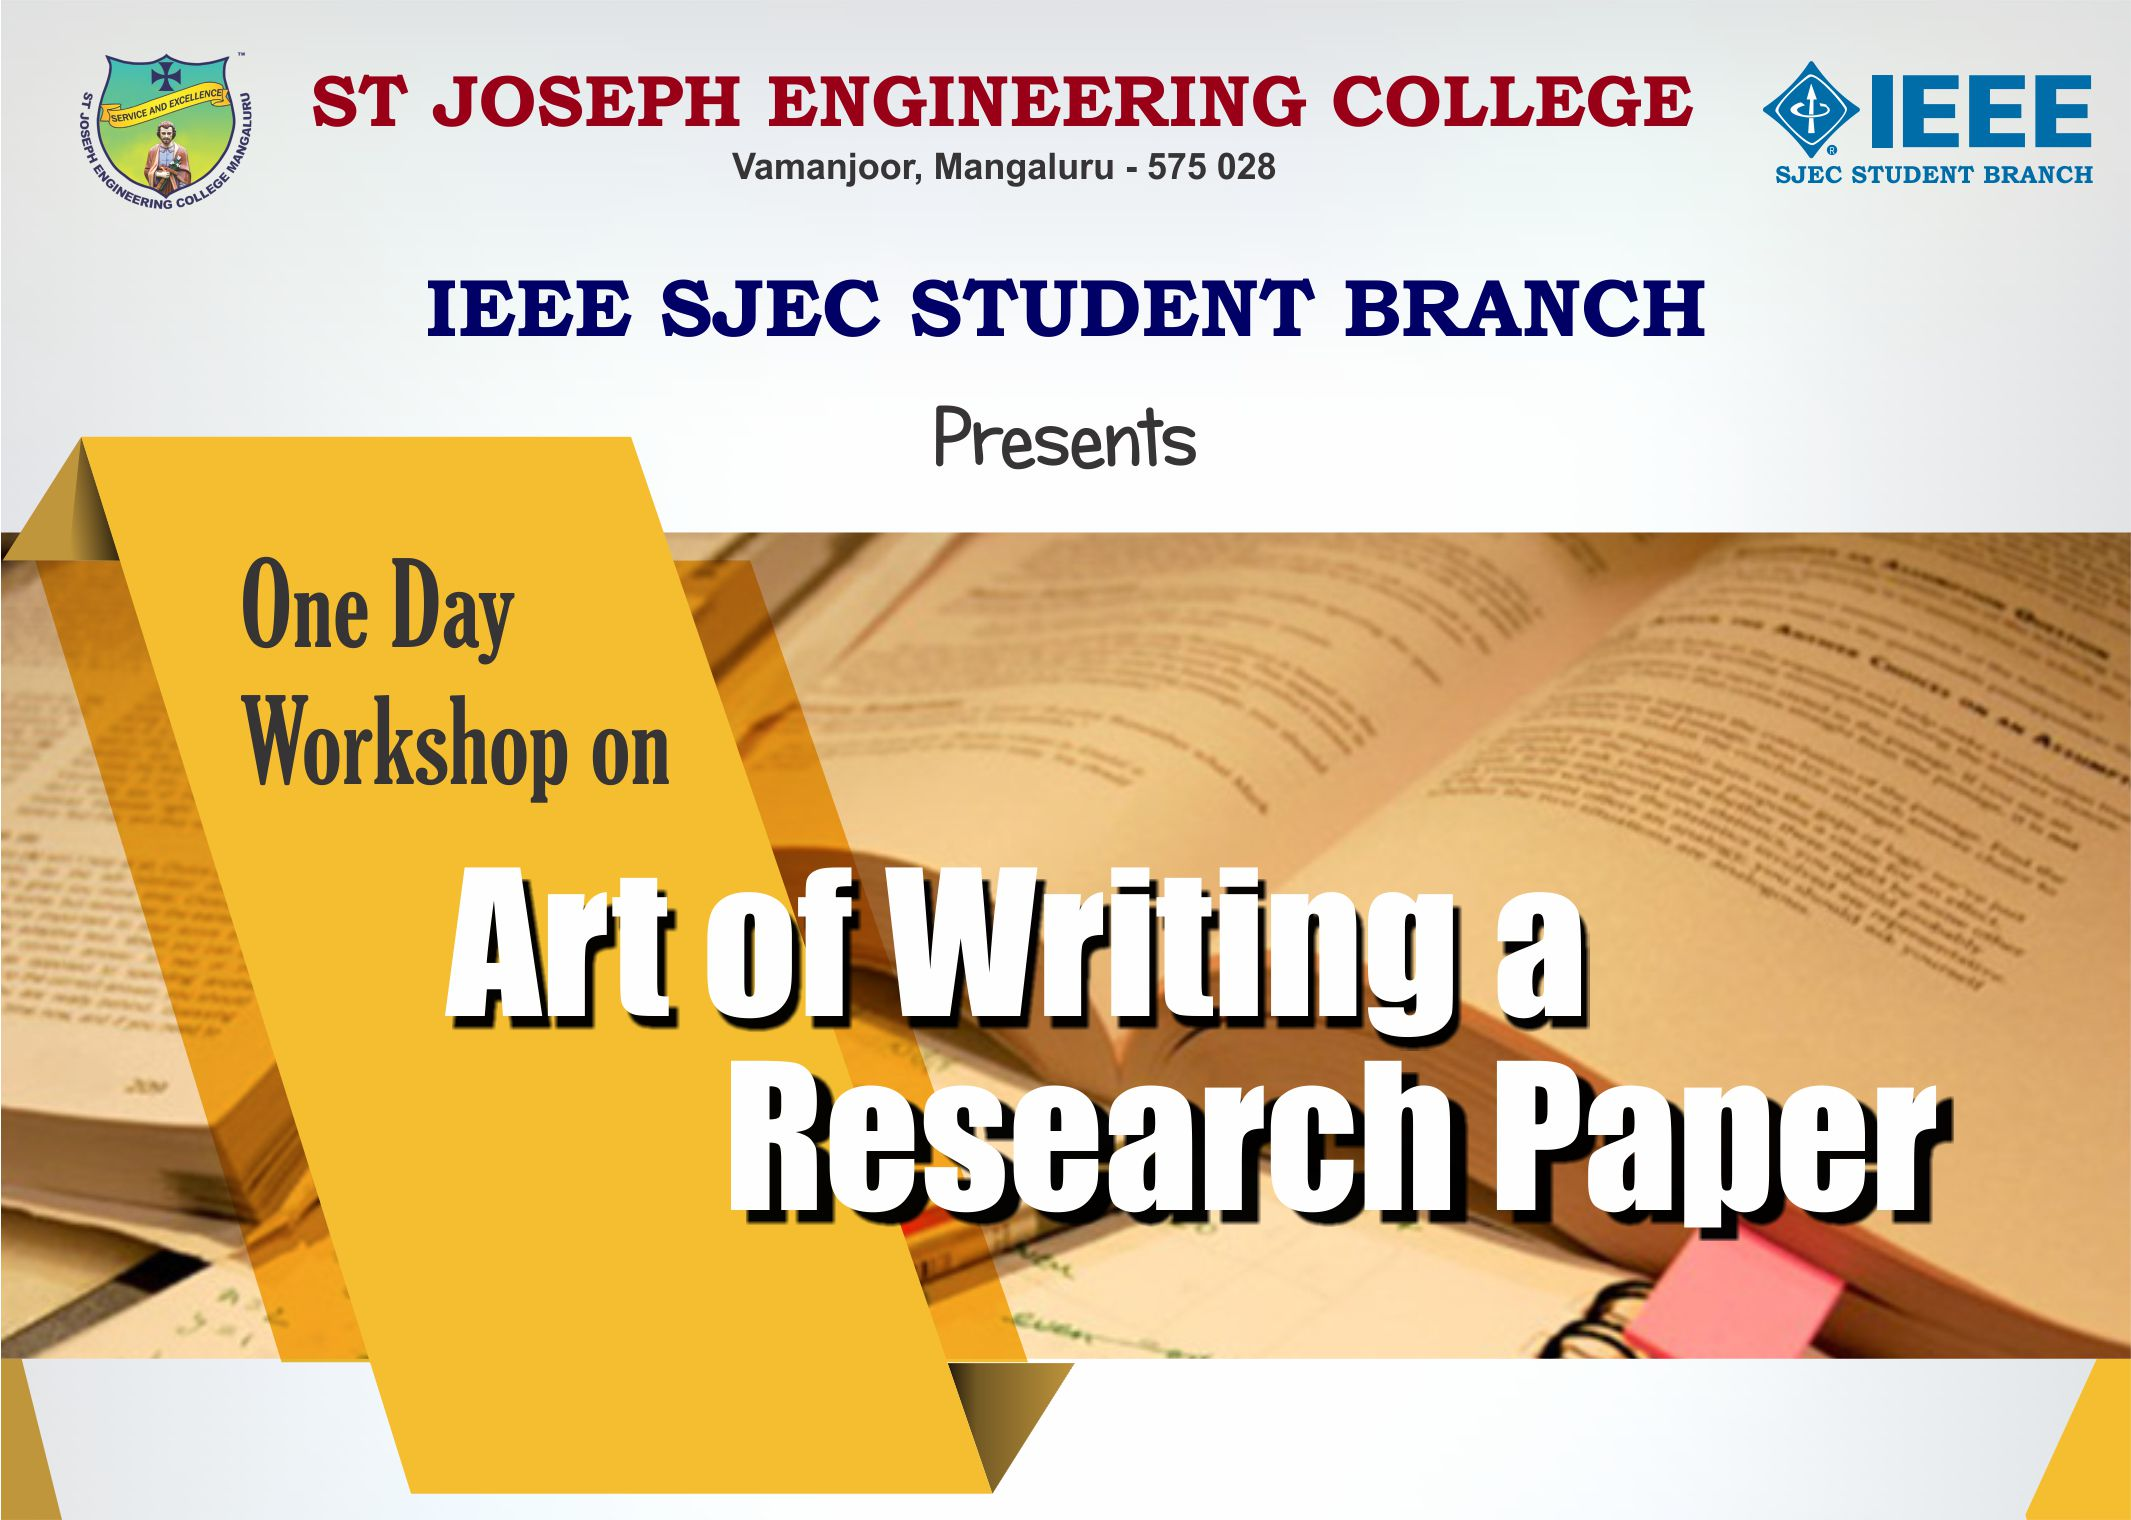 016 Writting Research Paper Workshop Dreaded A Writing In Political Science 3rd Edition Example Of Proposal Outline Full